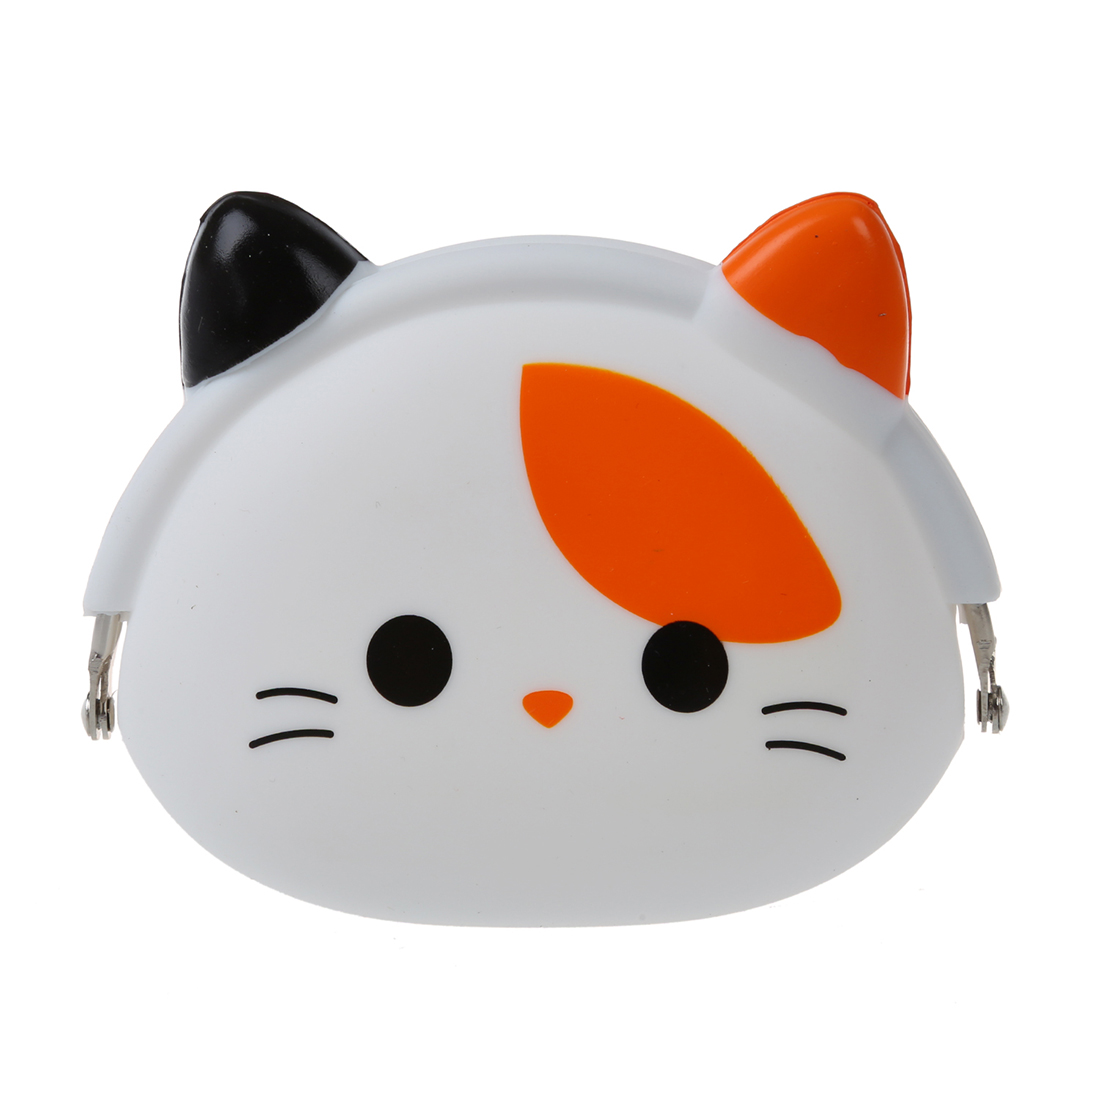 -Women Girls Wallet Kawaii Cute Cartoon Animal Silicone Jelly Coin Bag Purse Kids Gift Small Cat 2017 women white coin purses se cute wallet for children purse owl kawaii bag lovely cat bags women cartoon animal bag winx